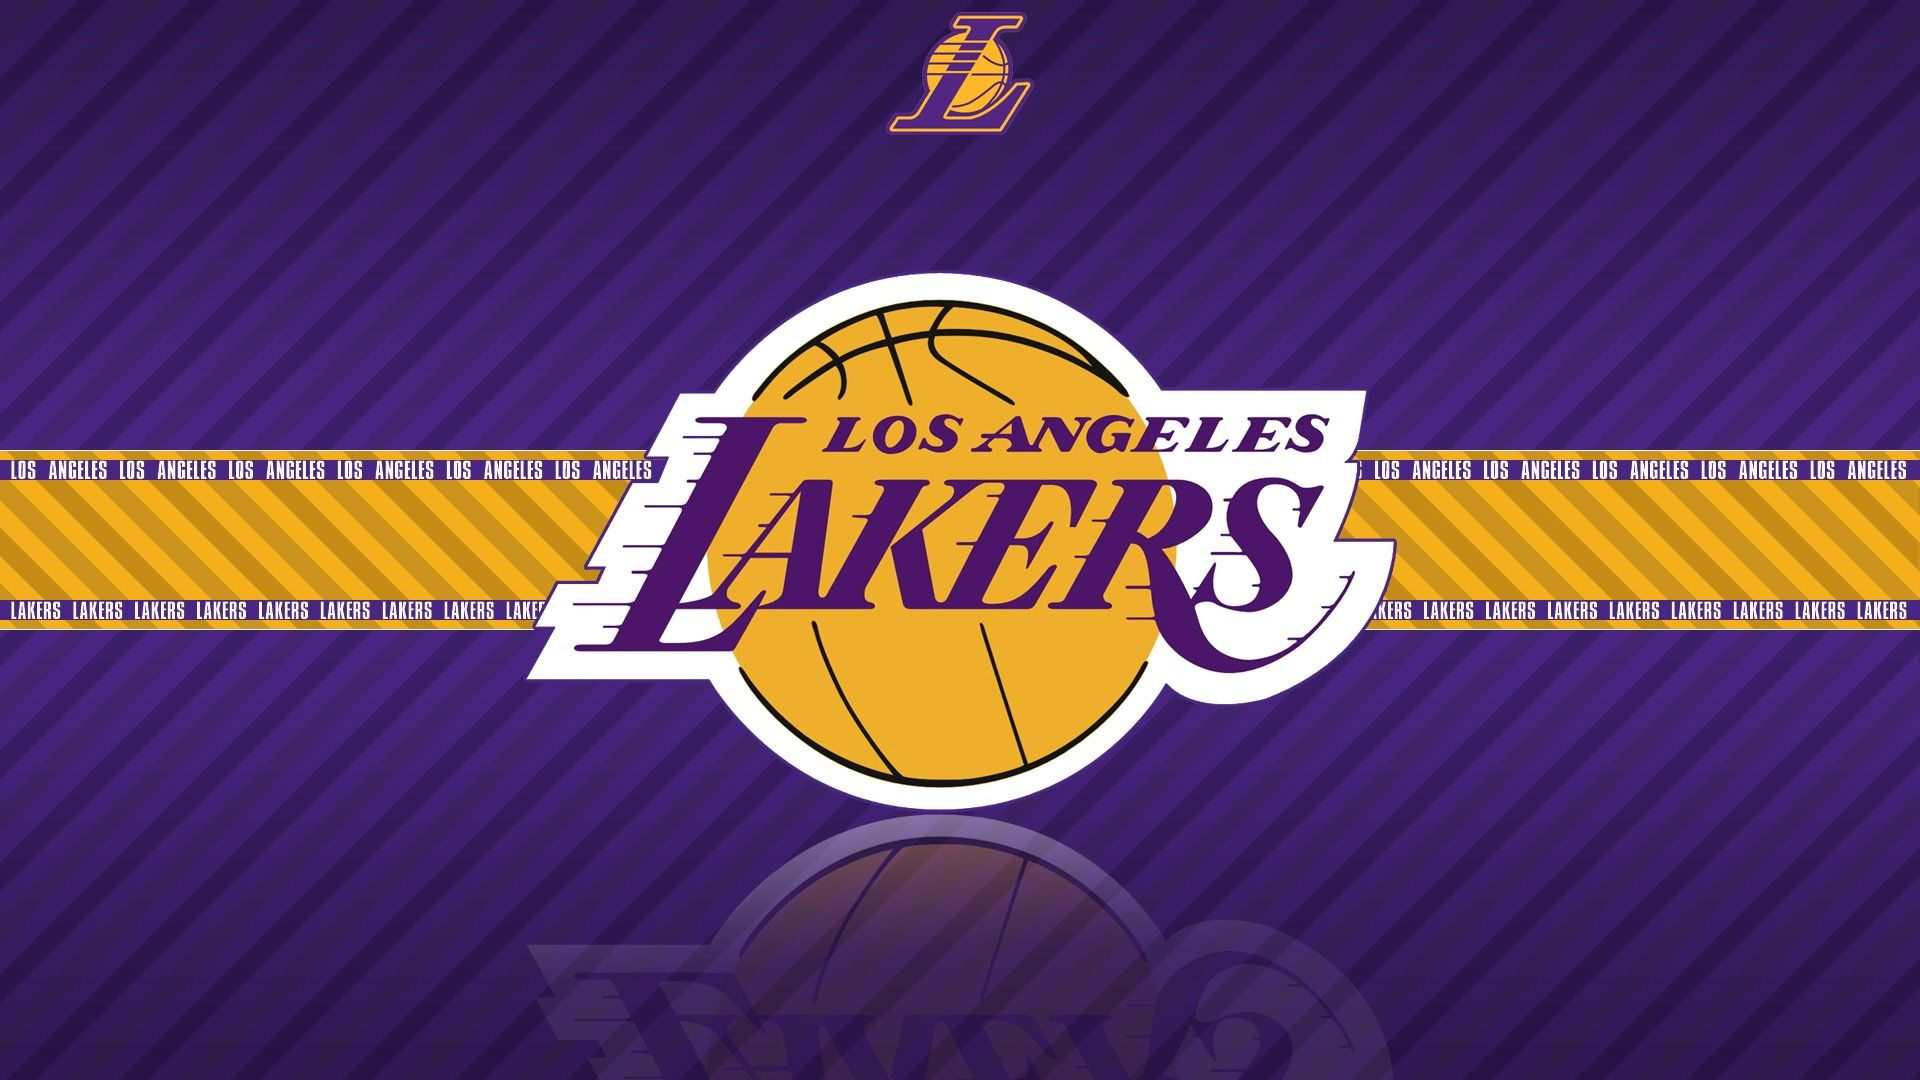 La Lakers Cool Wallpaper Lakers wallpaper, Lakers logo